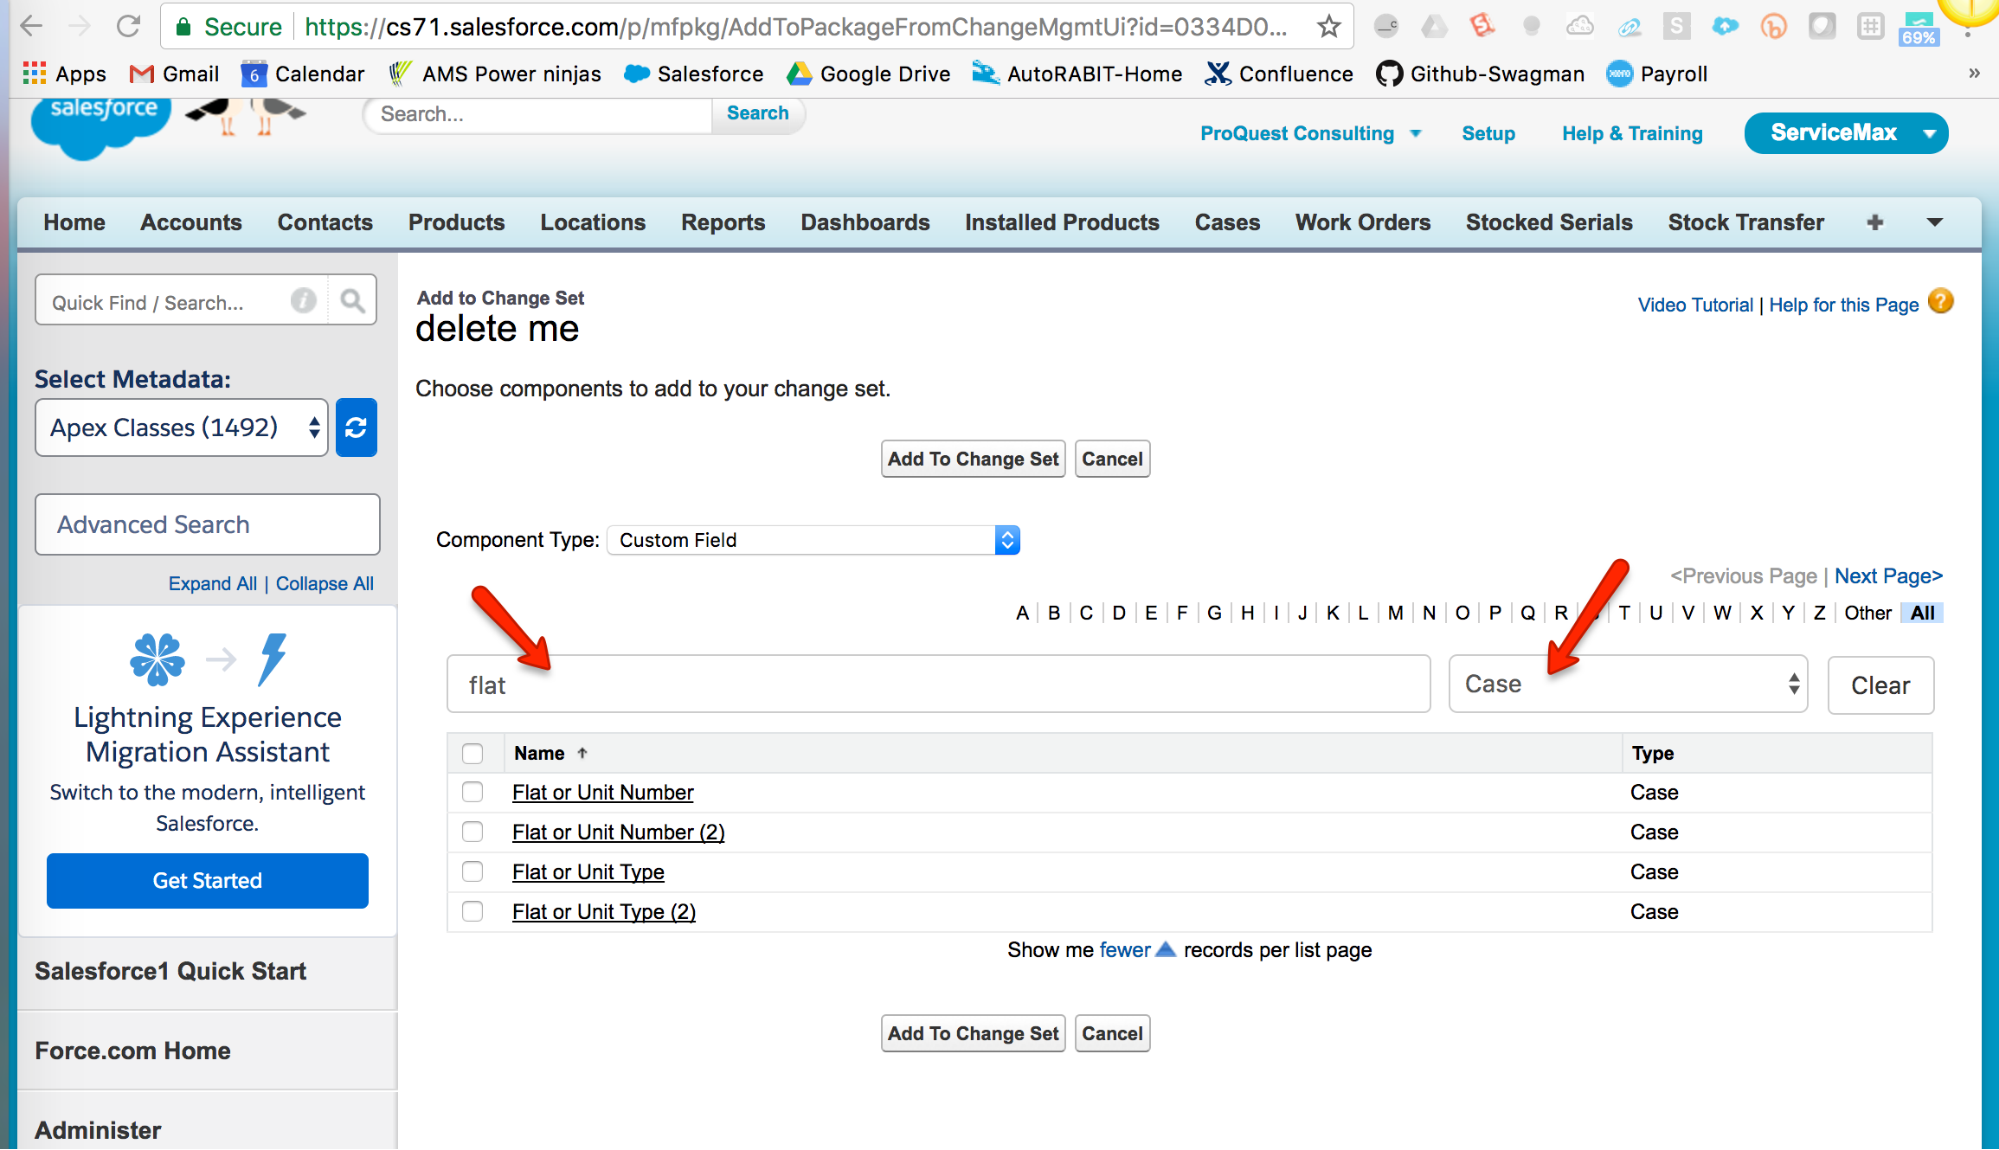 Handy Salesforce Tools for Developers | ProQuest Consulting